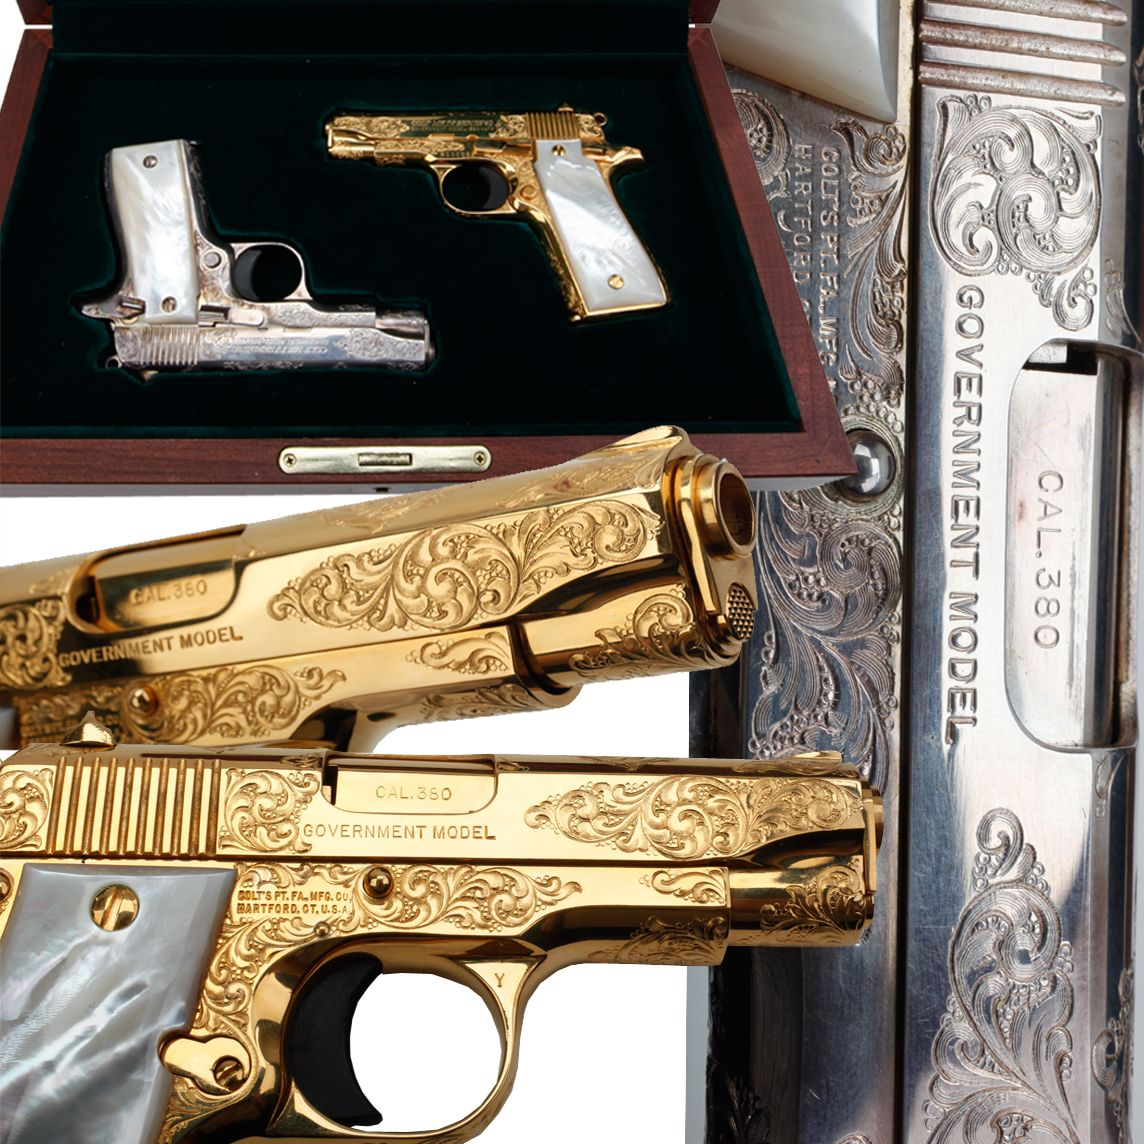 PAIR OF COLT .380 Government Model- The paired golden and silver Colt Government .380 pistols are downsized from the familiar .45 model. These two semi-automatic .380s are nicely engraved with factory mother-of-pearl grip panels. Like their bigger counterparts and resembling the Colt Commander with their rowel hammers, these pistols also have seven-shot magazines.